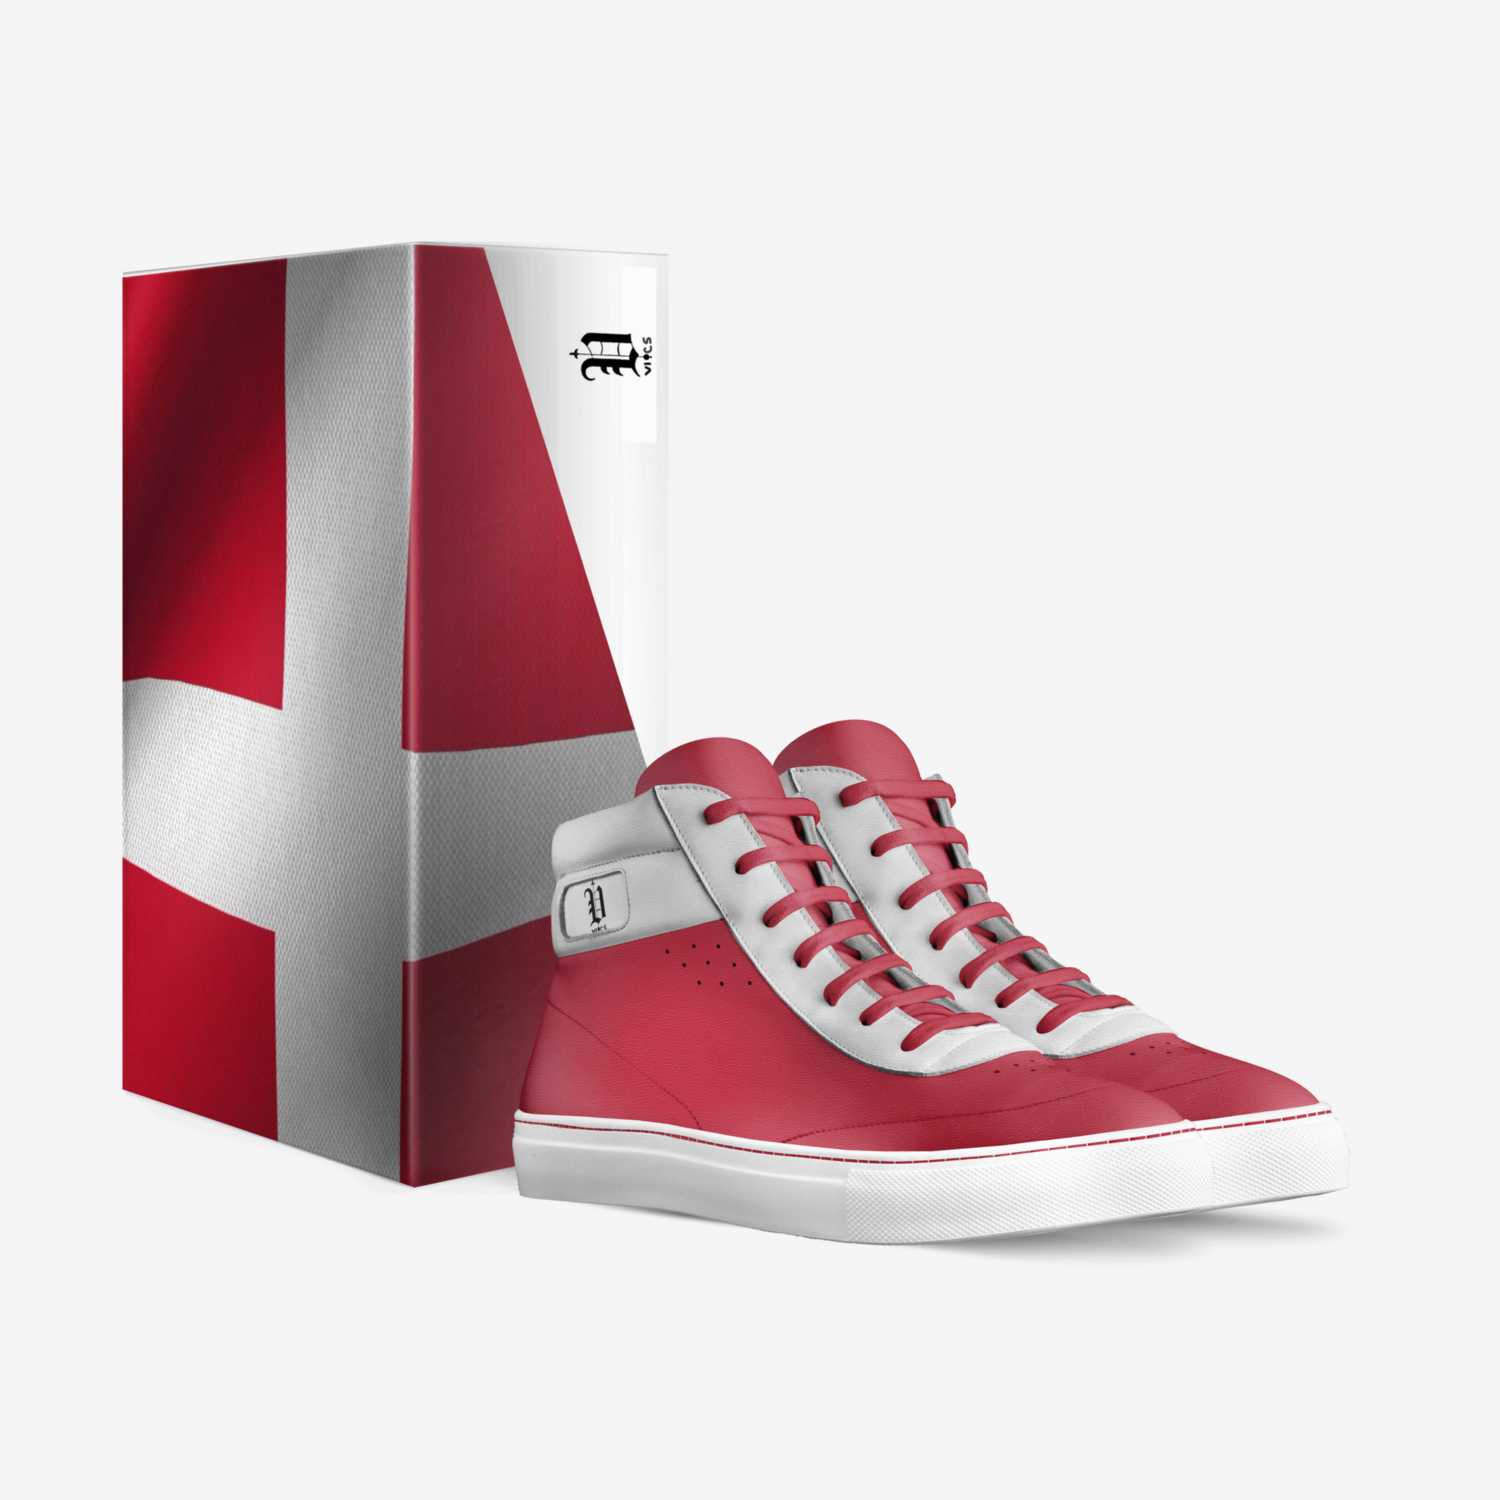 Vic's denmark custom made in Italy shoes by Brayden Murphy | Box view